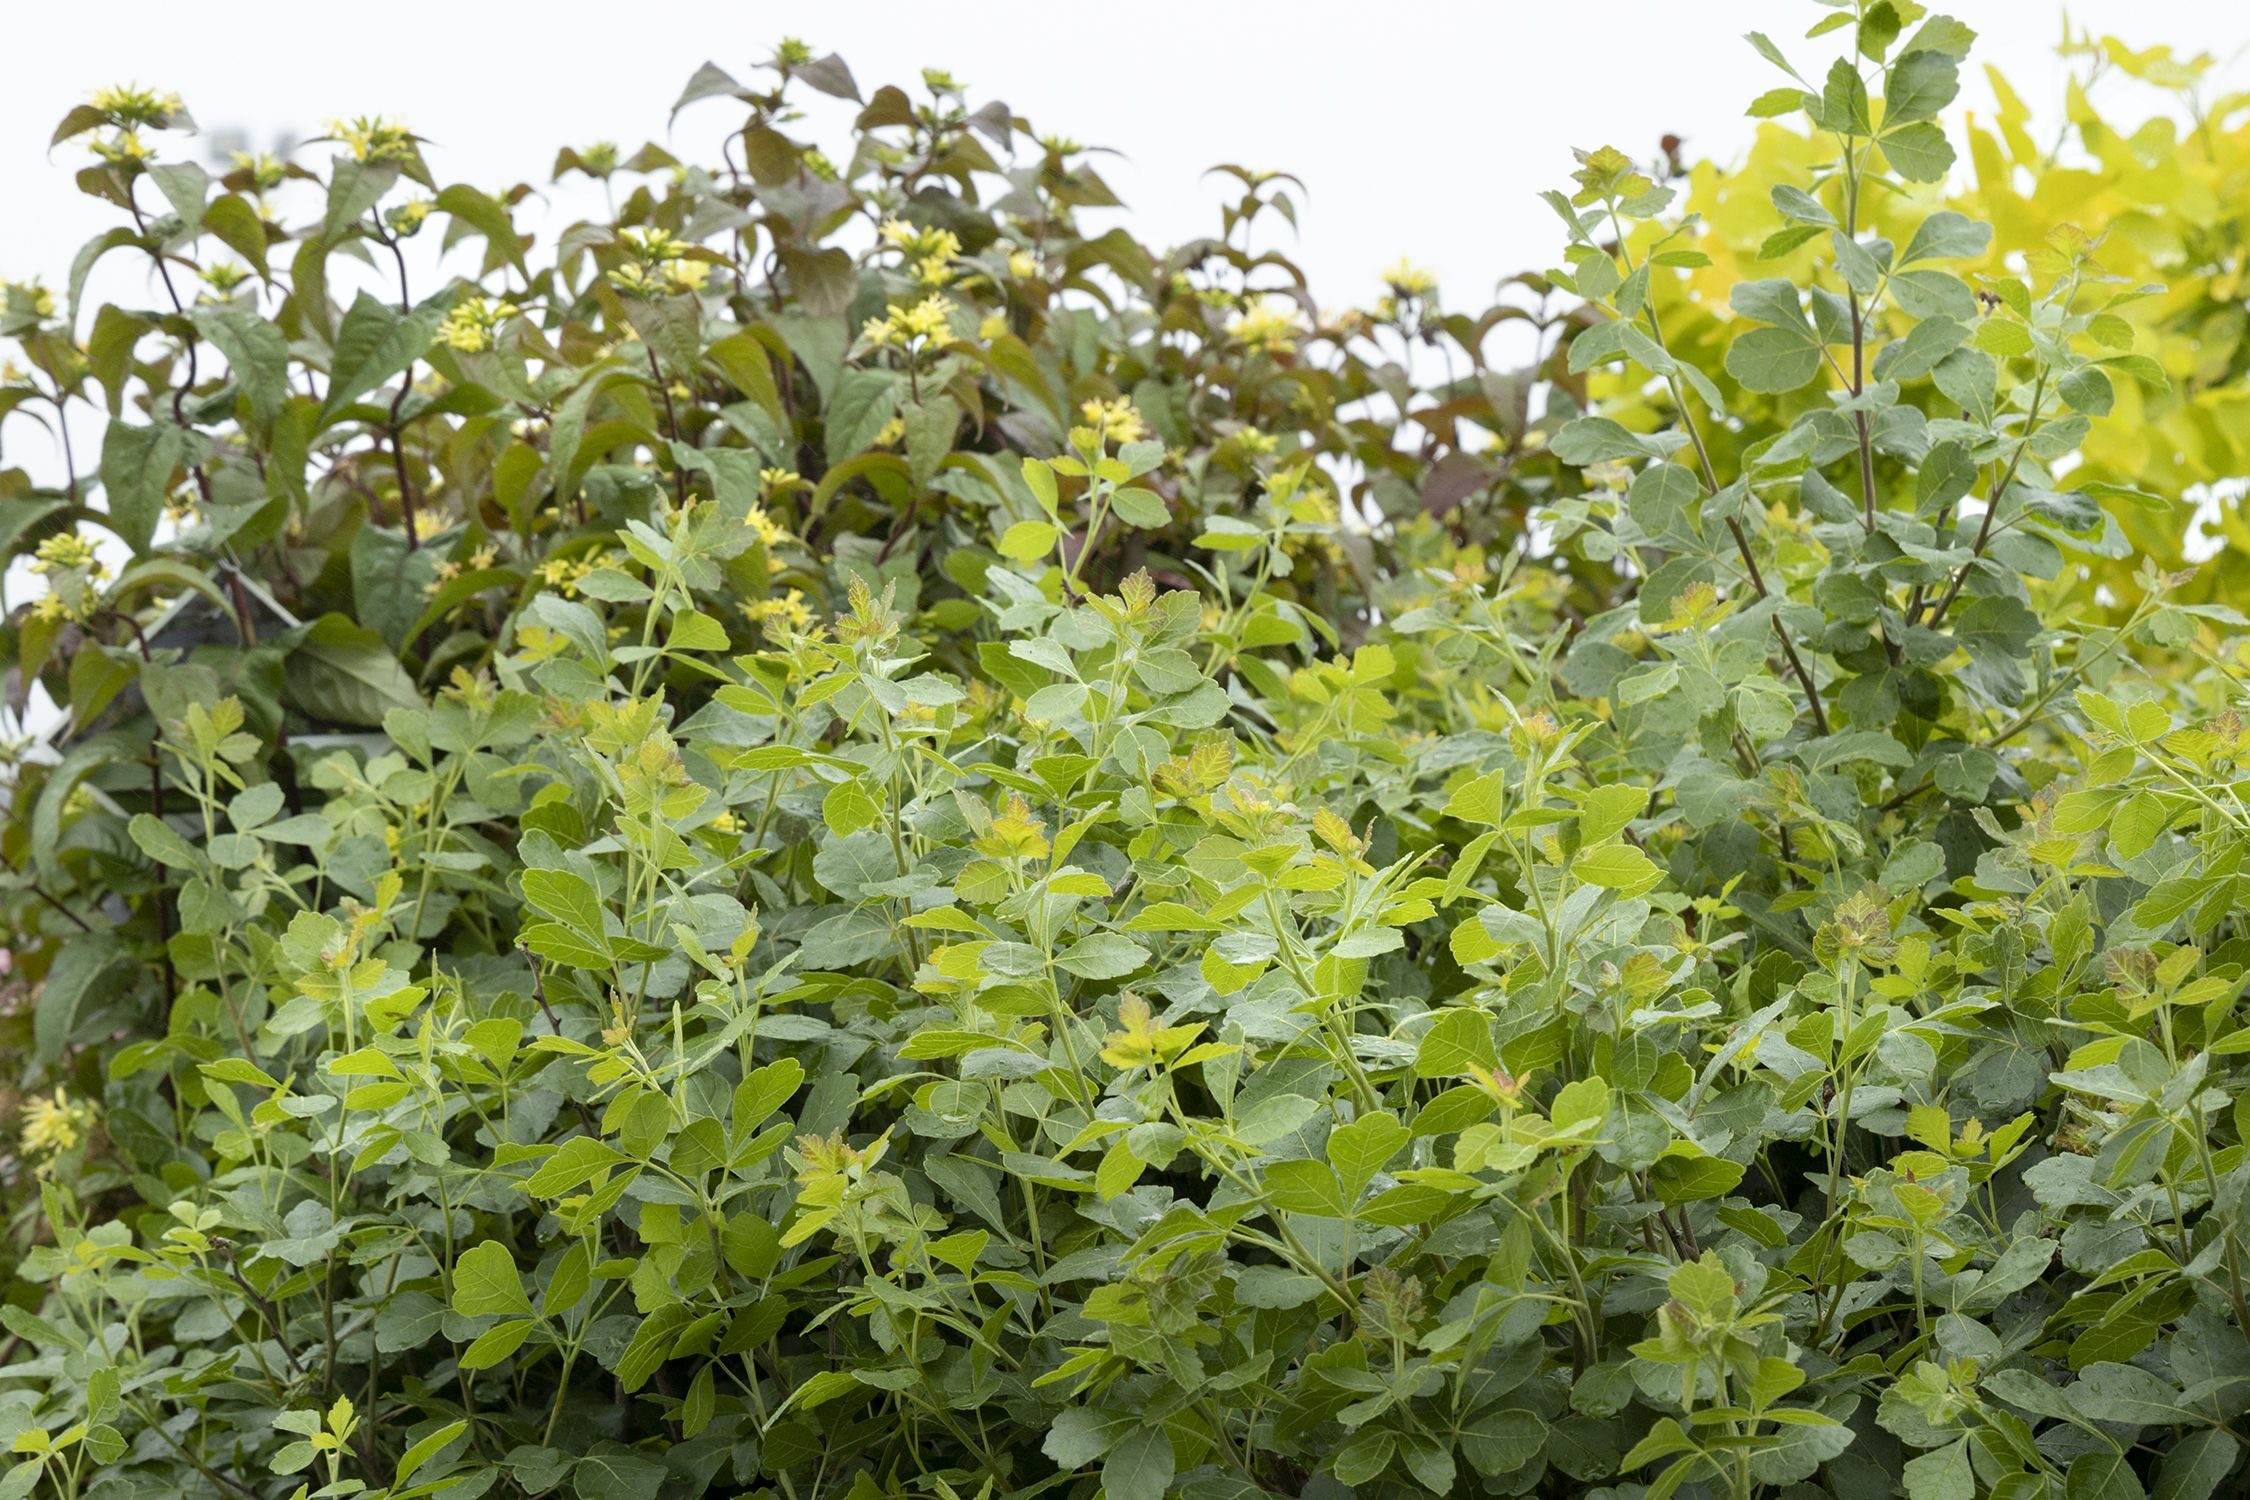 Gro-Low Fragrant Sumac - Monrovia - Gro-Low Fragrant Sumac